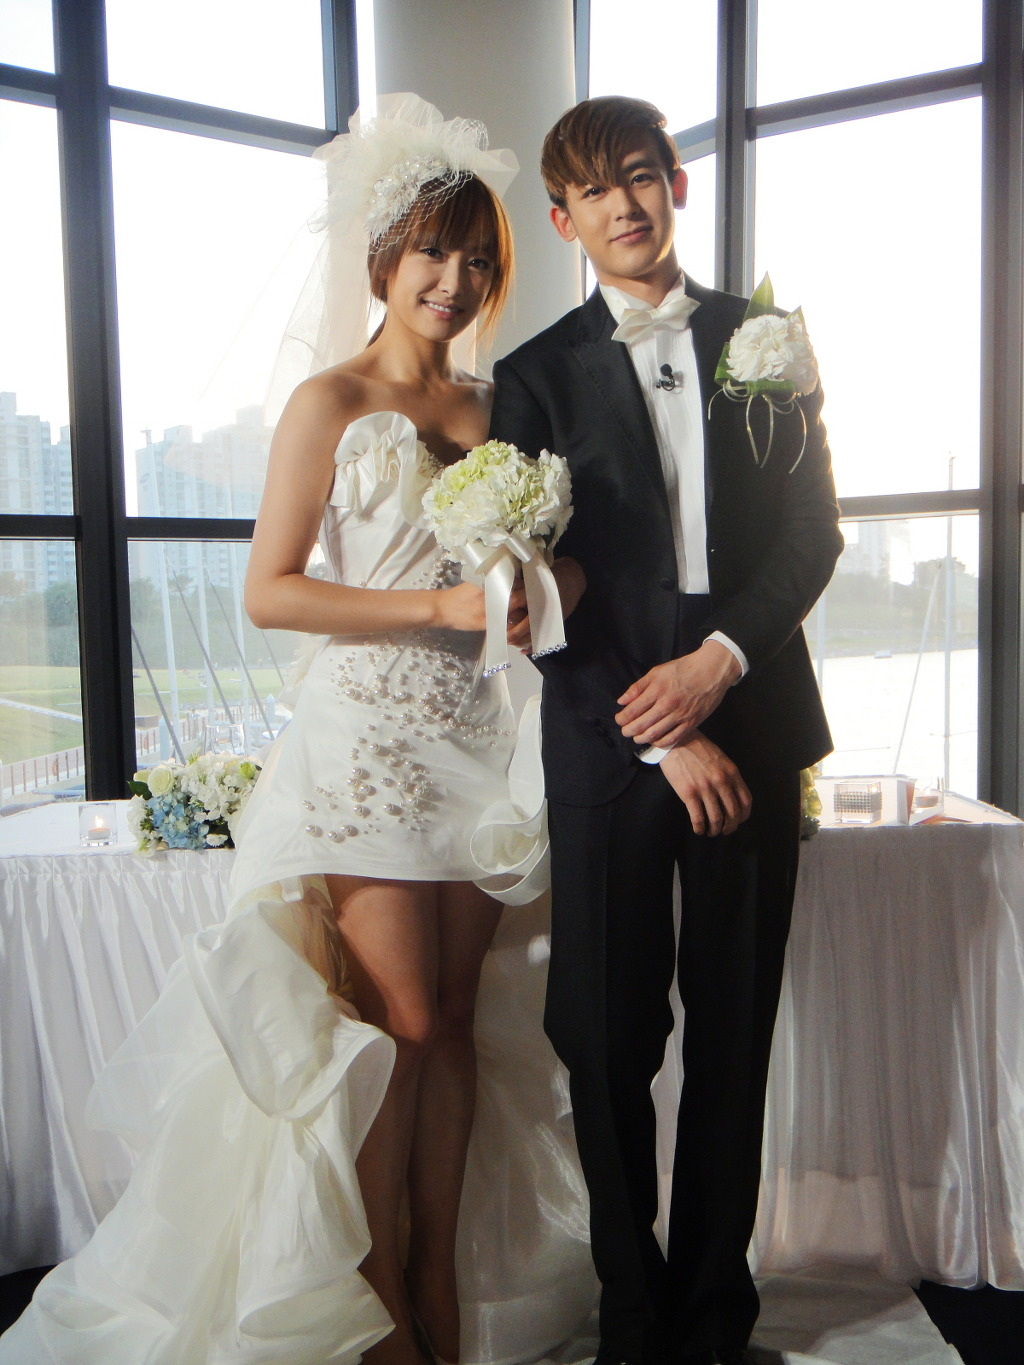 nichkhun and victoria dating 2014 F(x) victoria: wgm 뭐시 중헌디 (@yjjchoi) nichkhun tv shows victoria we got married by_venoms_sting 30th-dec-2016 02:14 am (utc) lol it was probs heaps awks as he was dating tiffany.